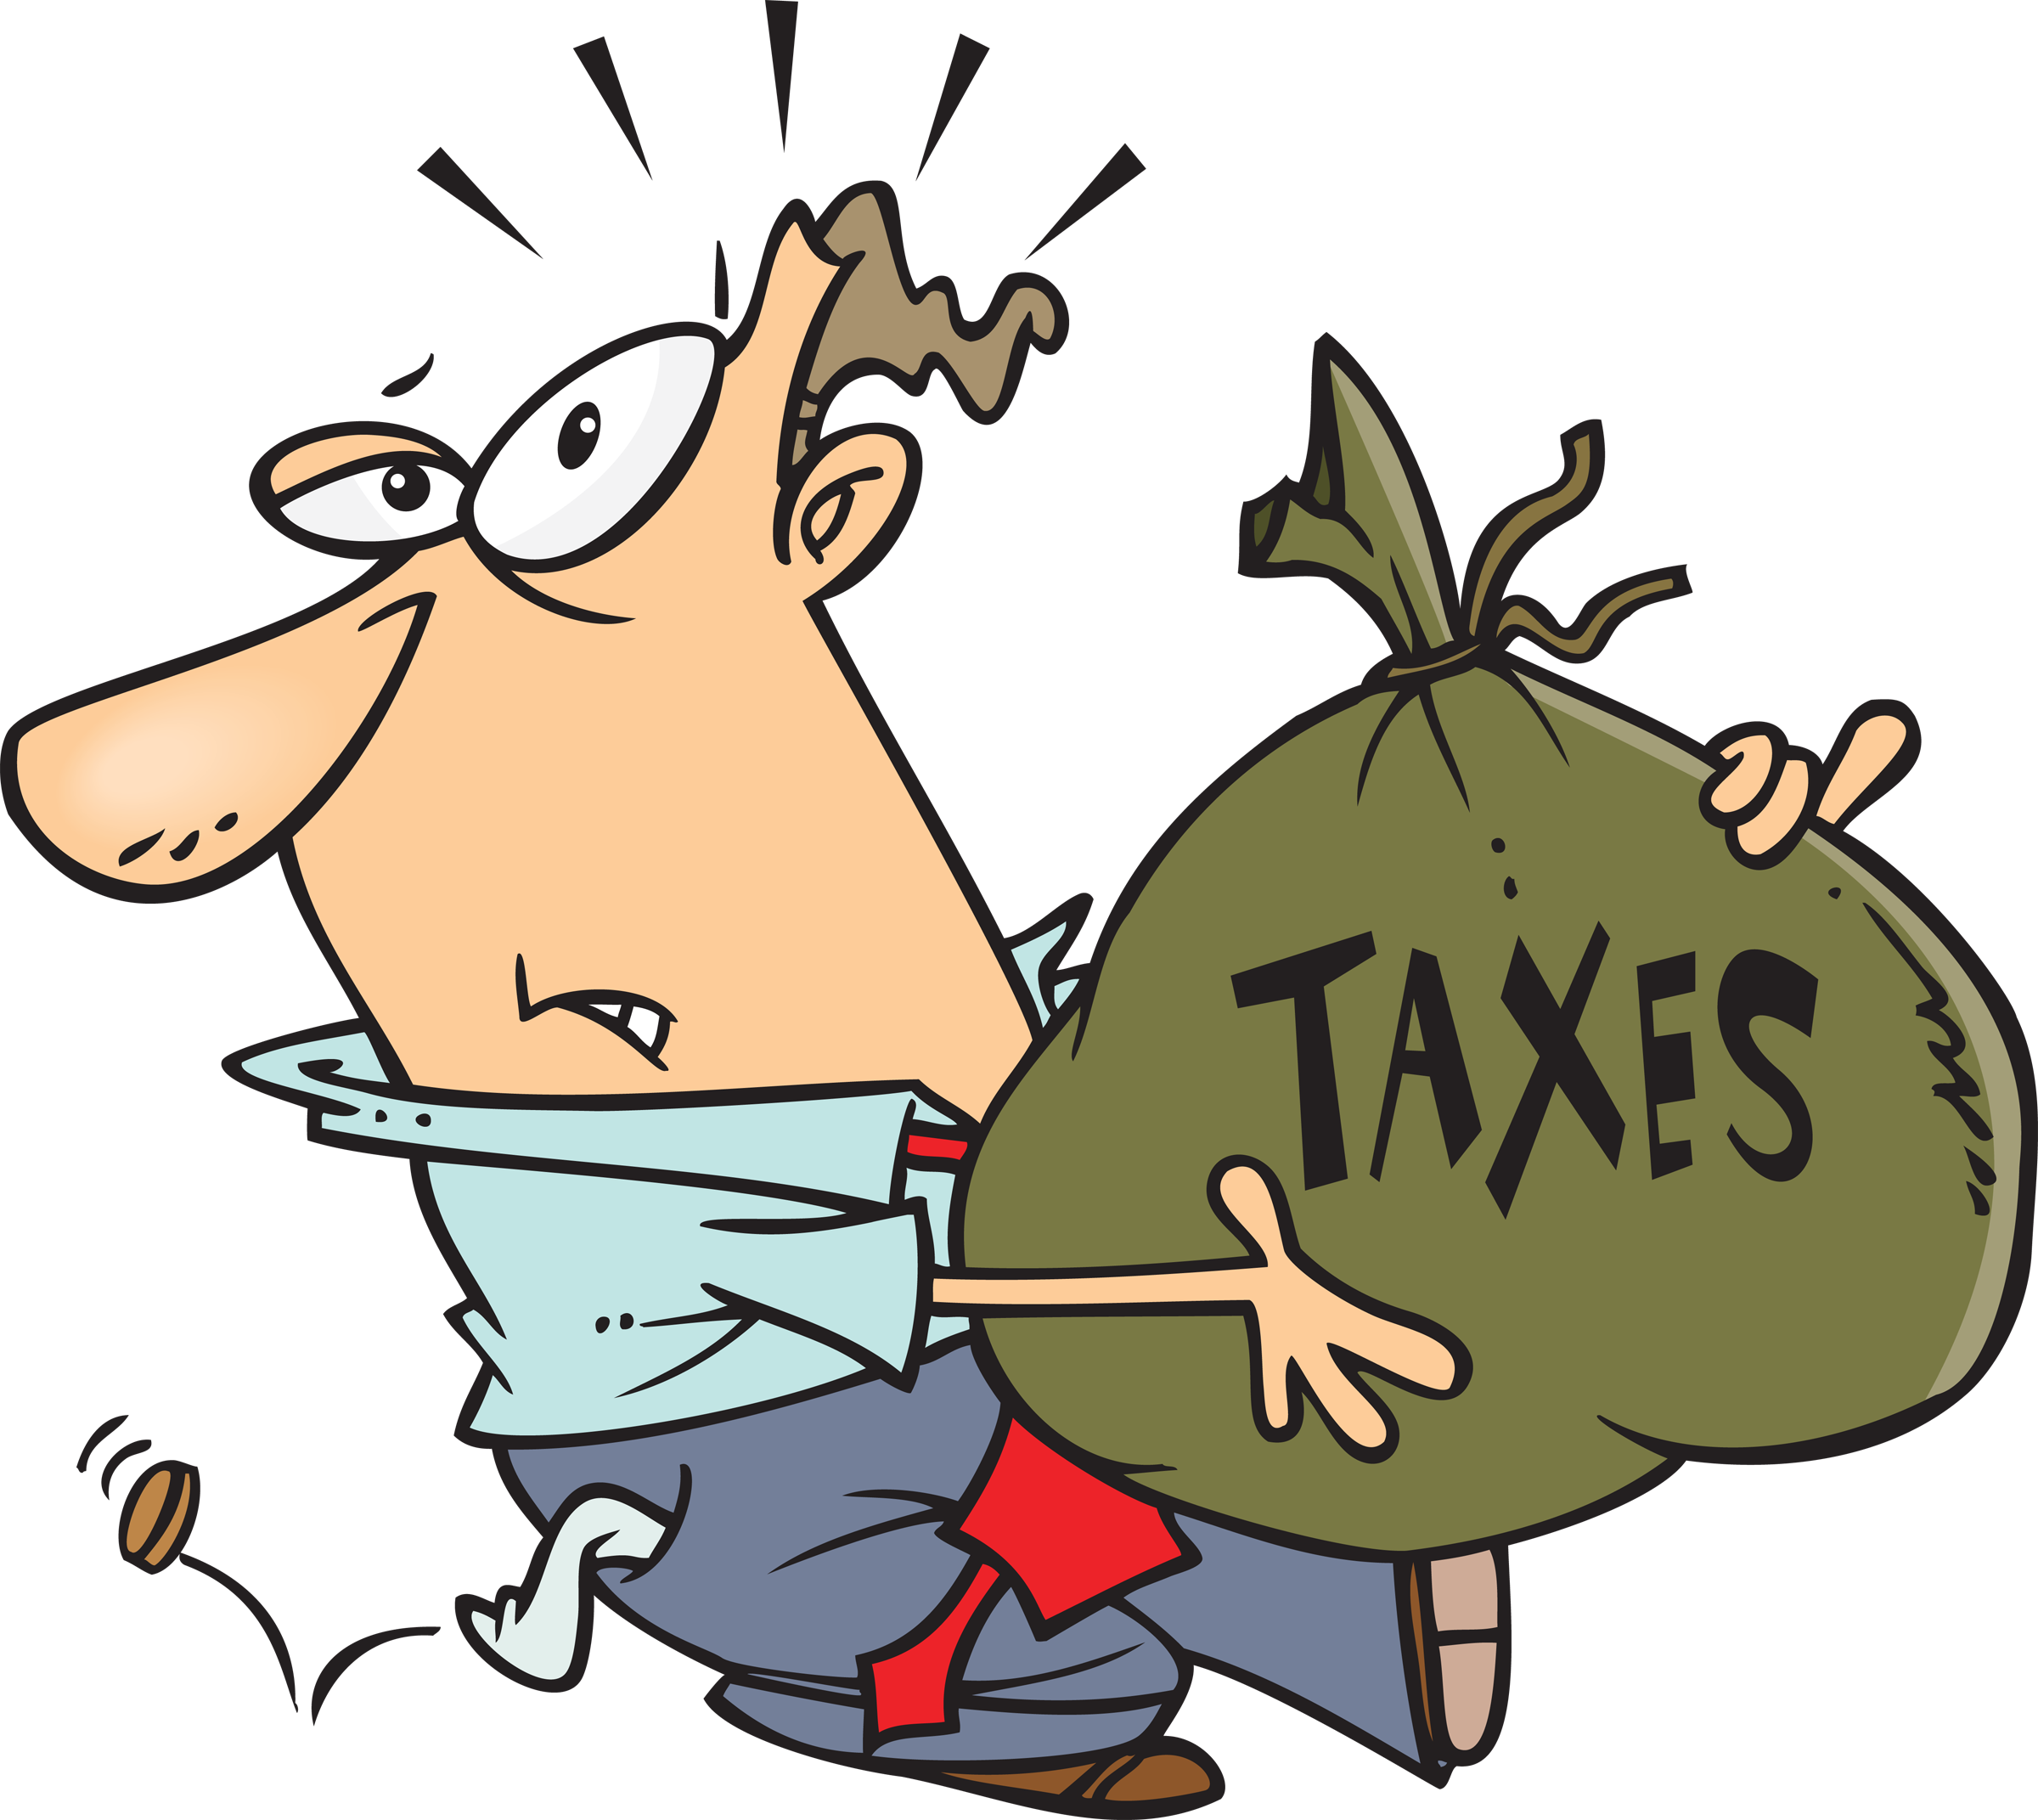 Are you happy to take a do it yourself approach to business are you happy to take a do it yourself approach to business bookkeeping and tax returns solutioingenieria Image collections